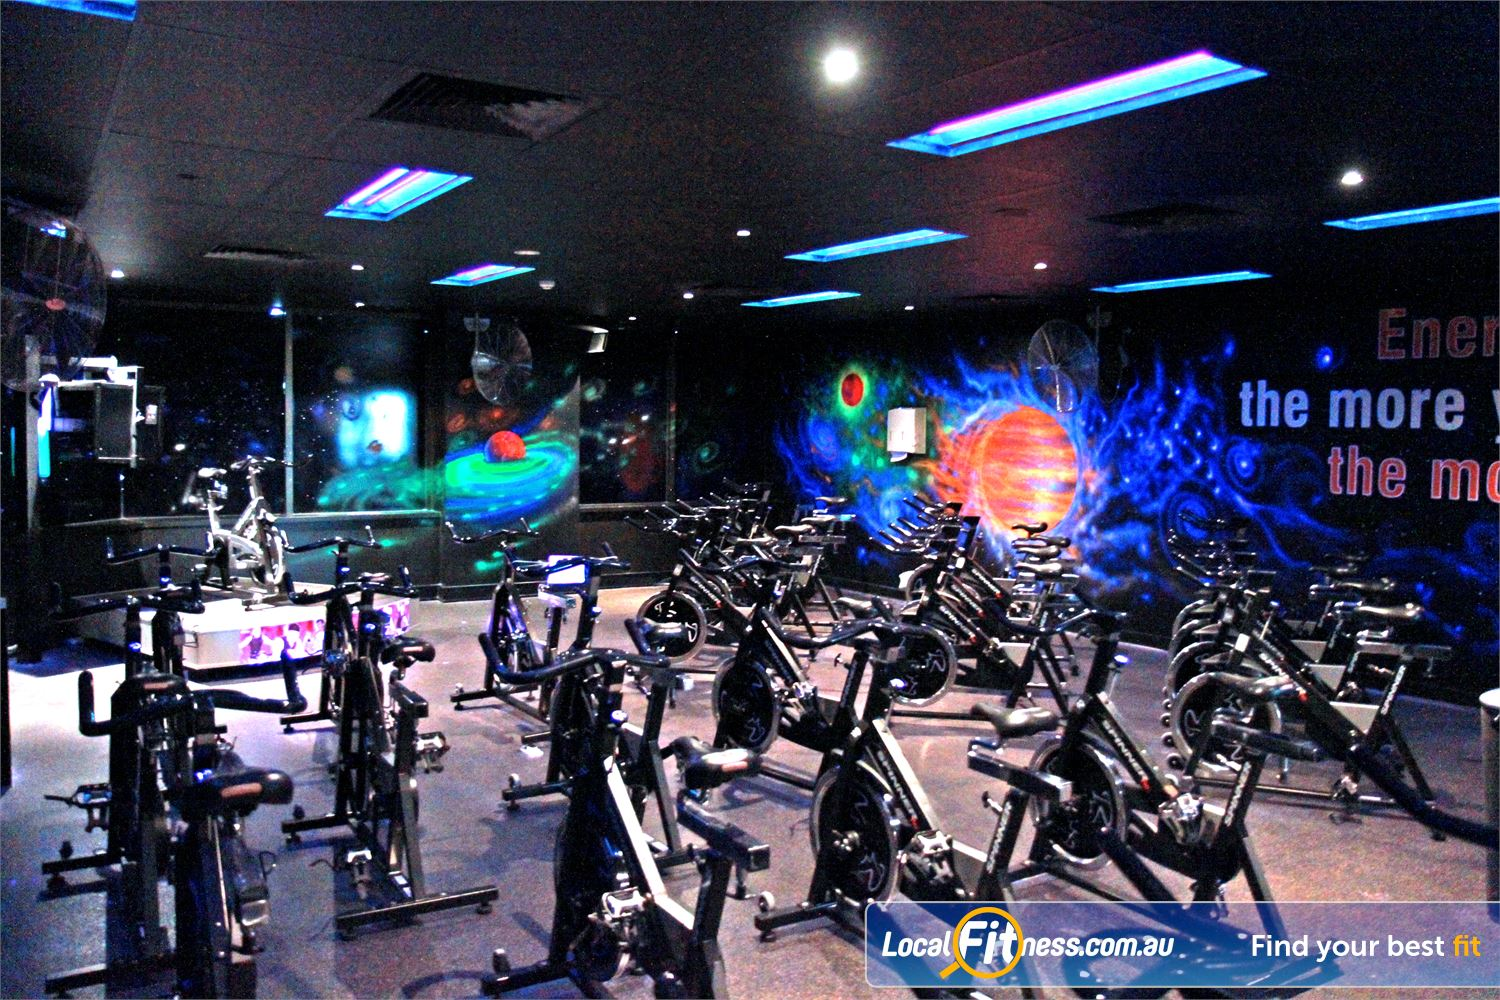 Goodlife Health Clubs Near Wishart Goodlife Mount Gravatt includes our signature Cosmic spin cycle classes.